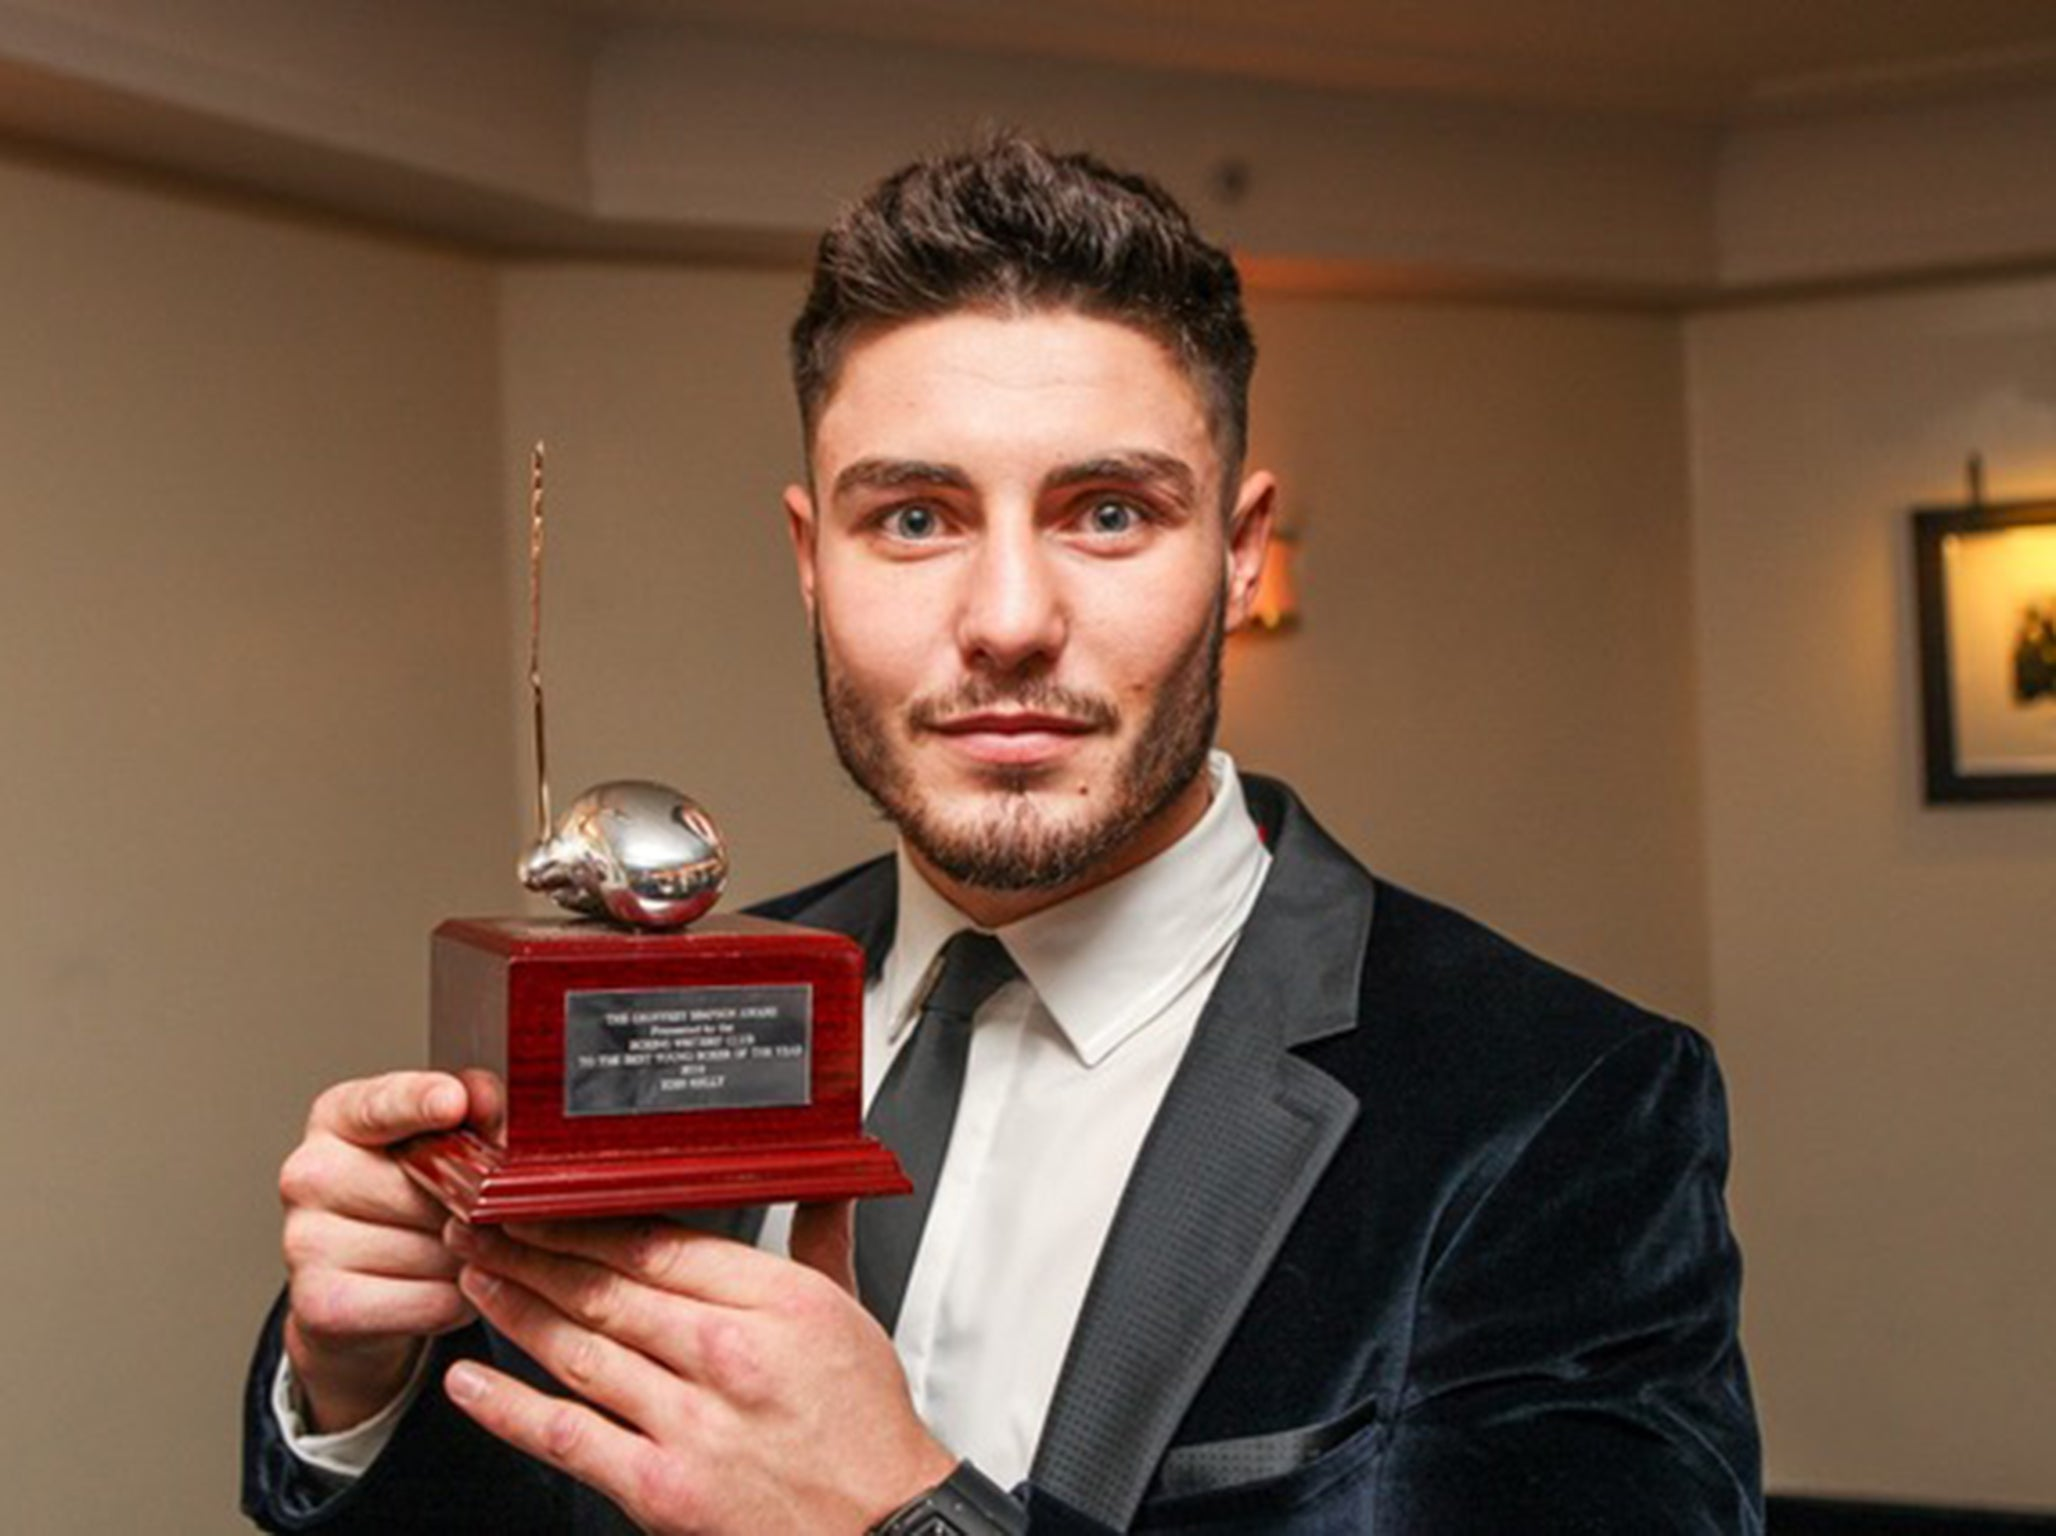 Josh Kelly named Boxing Writers' Club Young Boxer of the Year at star-studded awards ceremony